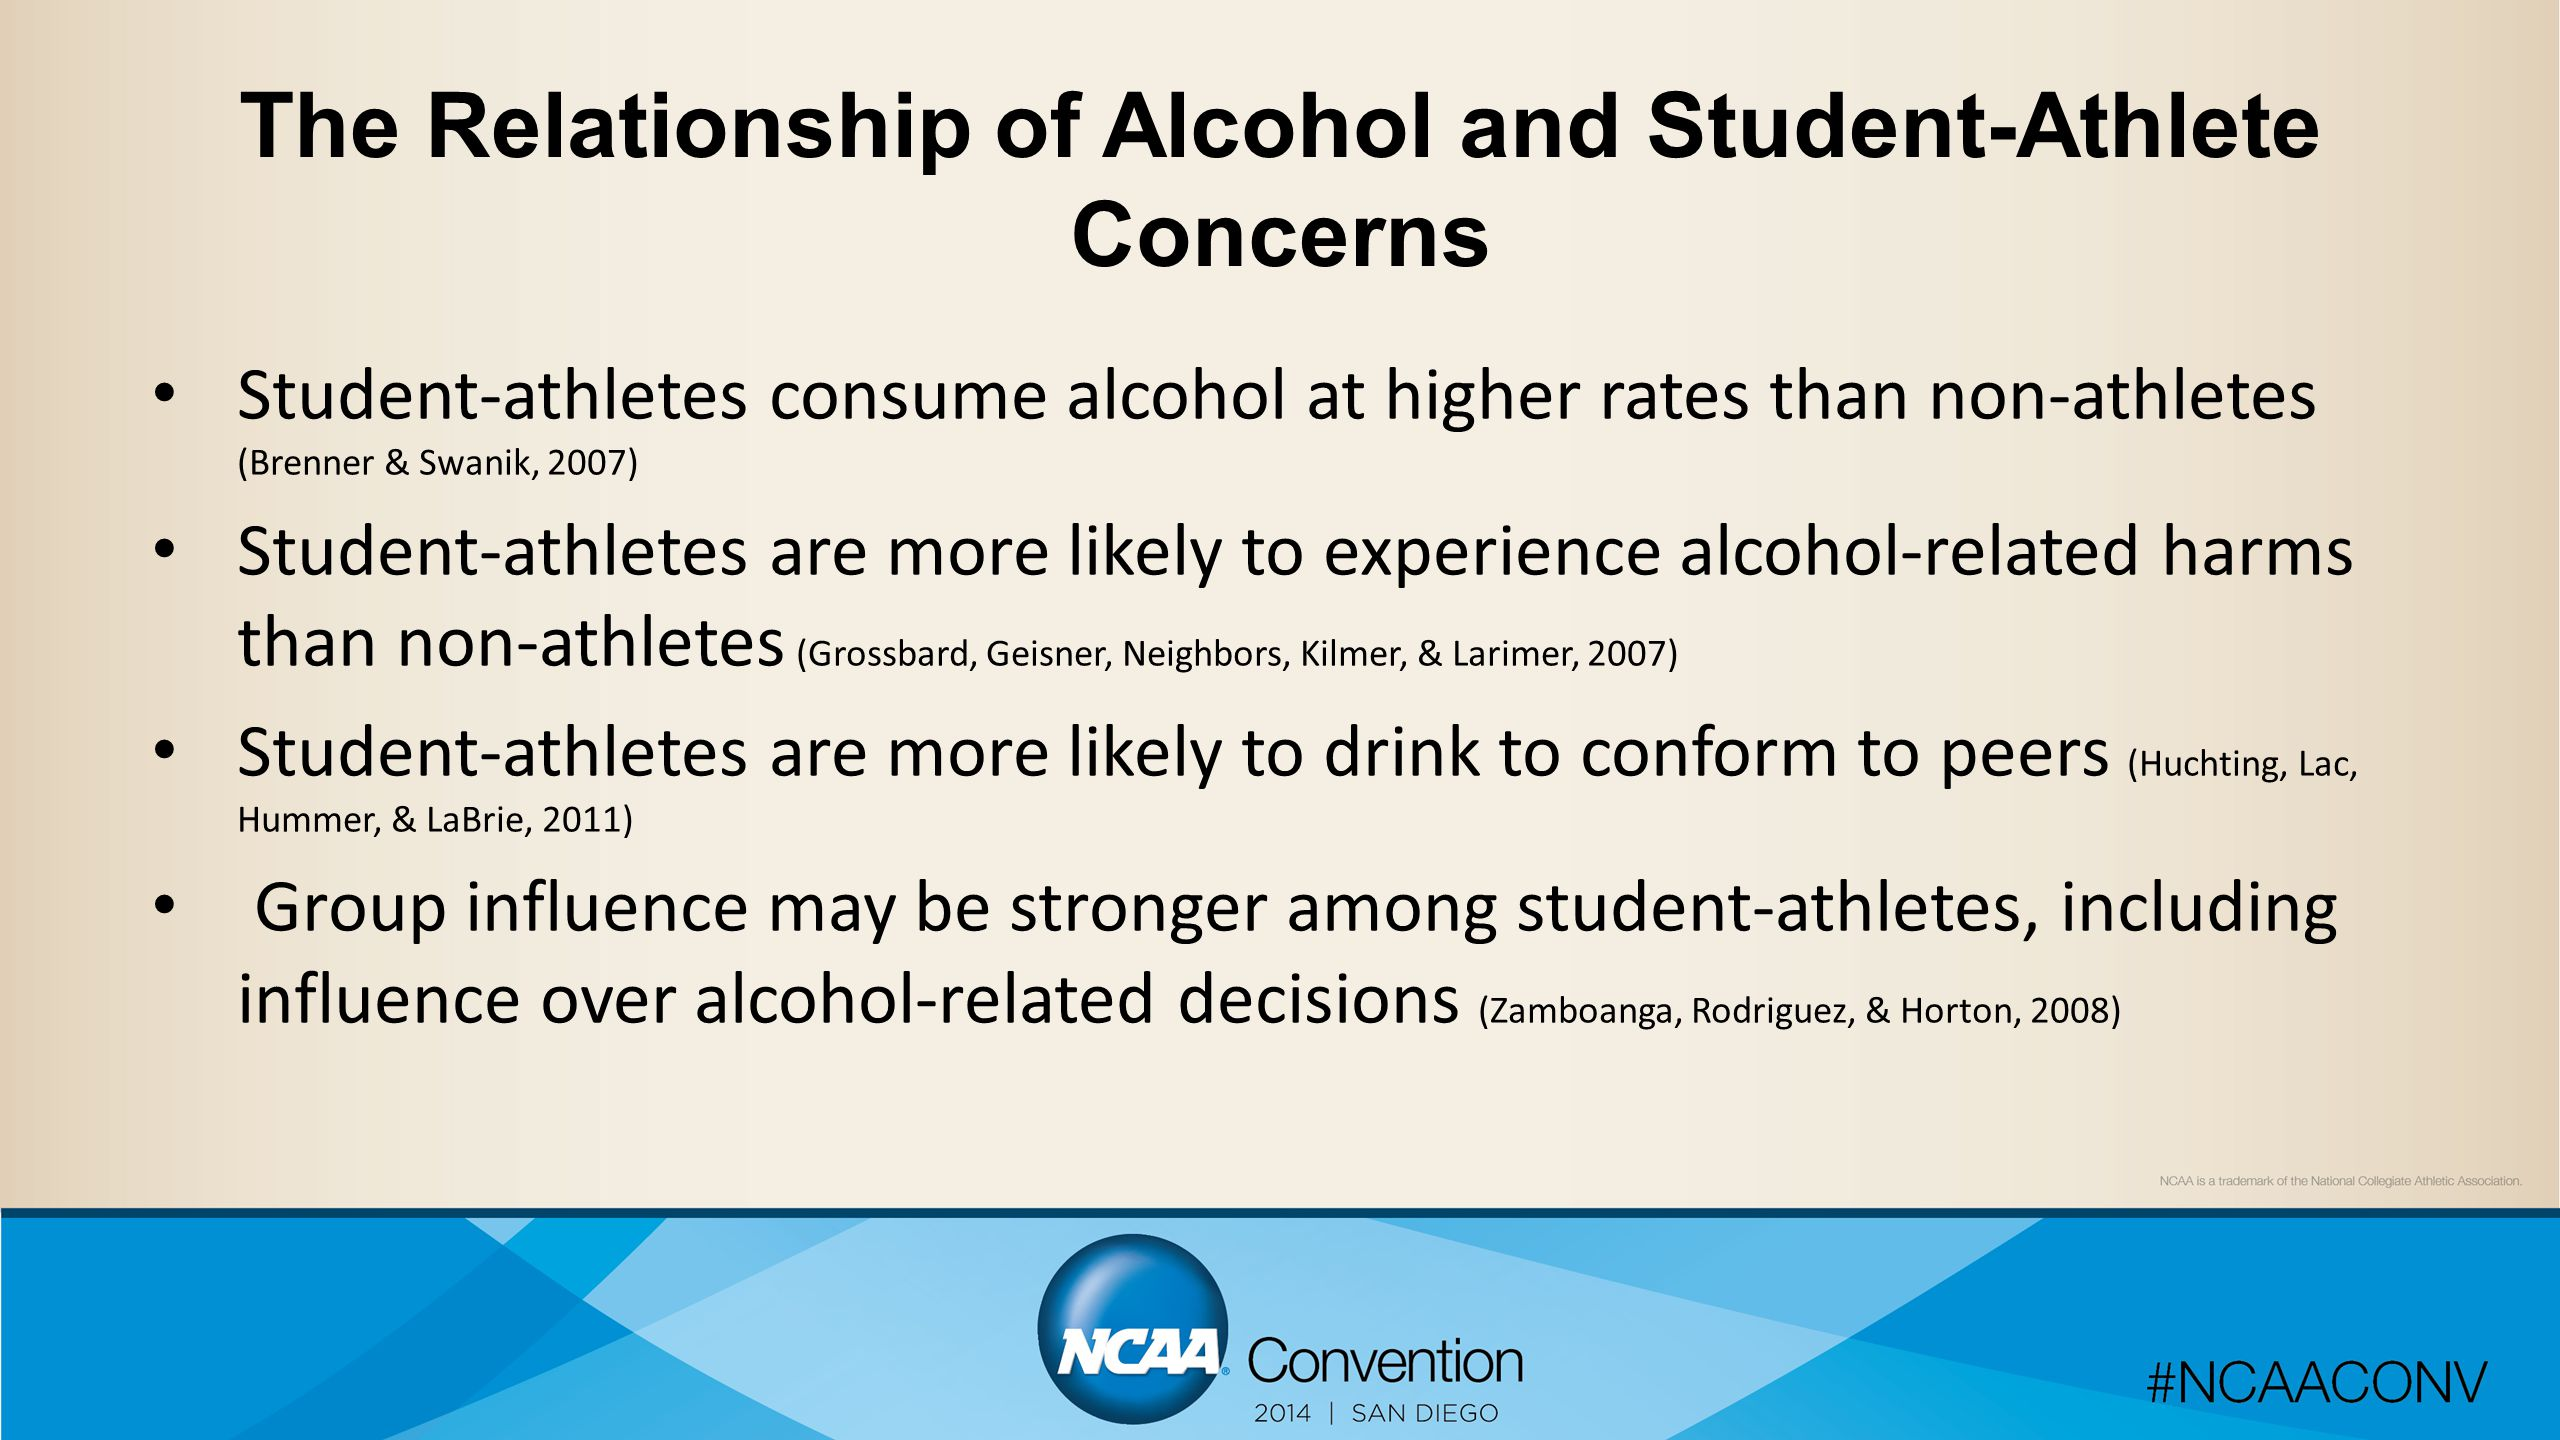 The Relationship of Alcohol and Student-Athlete Concerns Student-athletes consume alcohol at higher rates than non-athletes (Brenner & Swanik, 2007) Student-athletes are more likely to experience alcohol-related harms than non-athletes (Grossbard, Geisner, Neighbors, Kilmer, & Larimer, 2007) Student-athletes are more likely to drink to conform to peers (Huchting, Lac, Hummer, & LaBrie, 2011) Group influence may be stronger among student-athletes, including influence over alcohol-related decisions (Zamboanga, Rodriguez, & Horton, 2008)